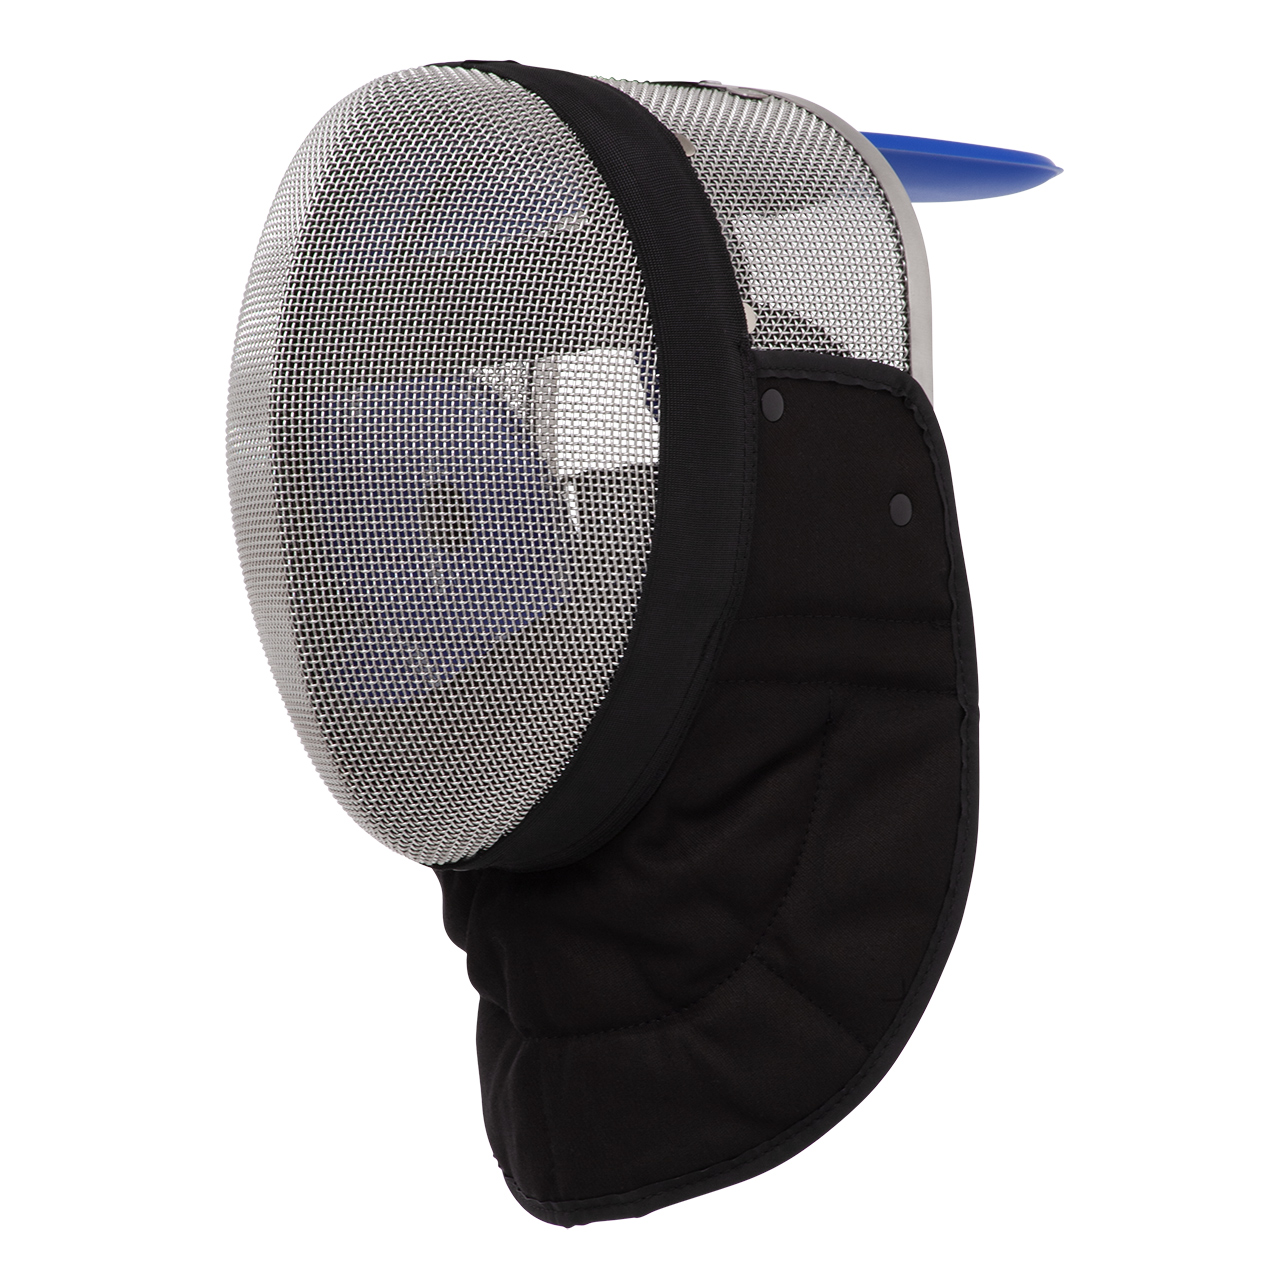 "master fencing mask sabre 1600N ""EXTRA"", with black bib"